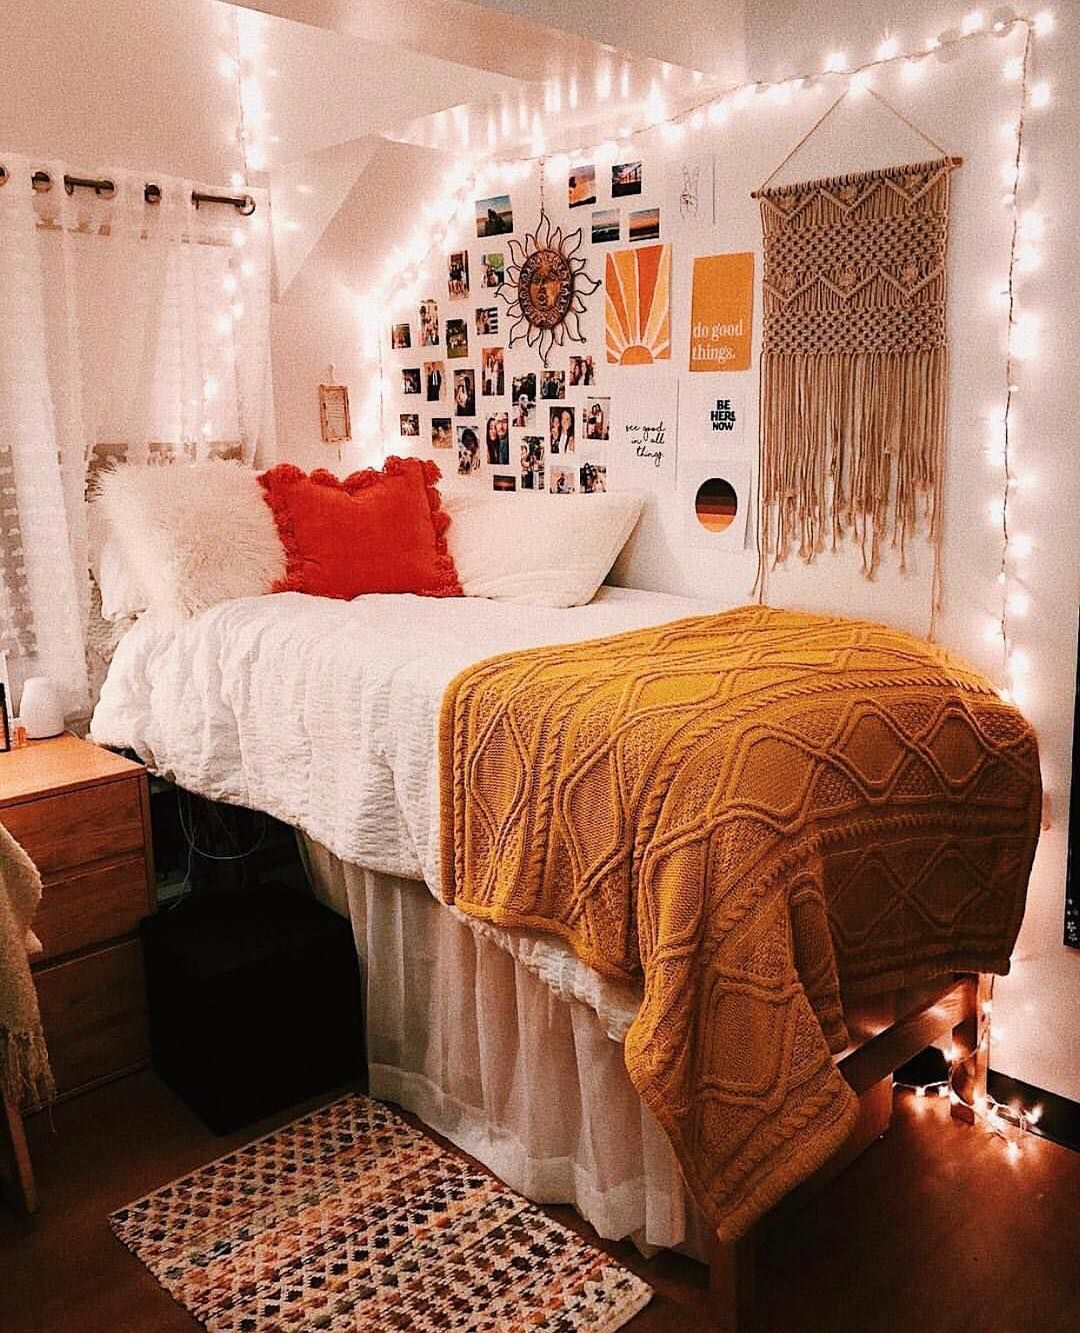 "dOrMz!! on Instagram: ""whats your favorite show? • • photo is not ours! cr: @/apartmentaesthetic • • • #dormdecor #dormsweetdorm #dormroom #dorm #dormlife…"" #collegedormroomideas"